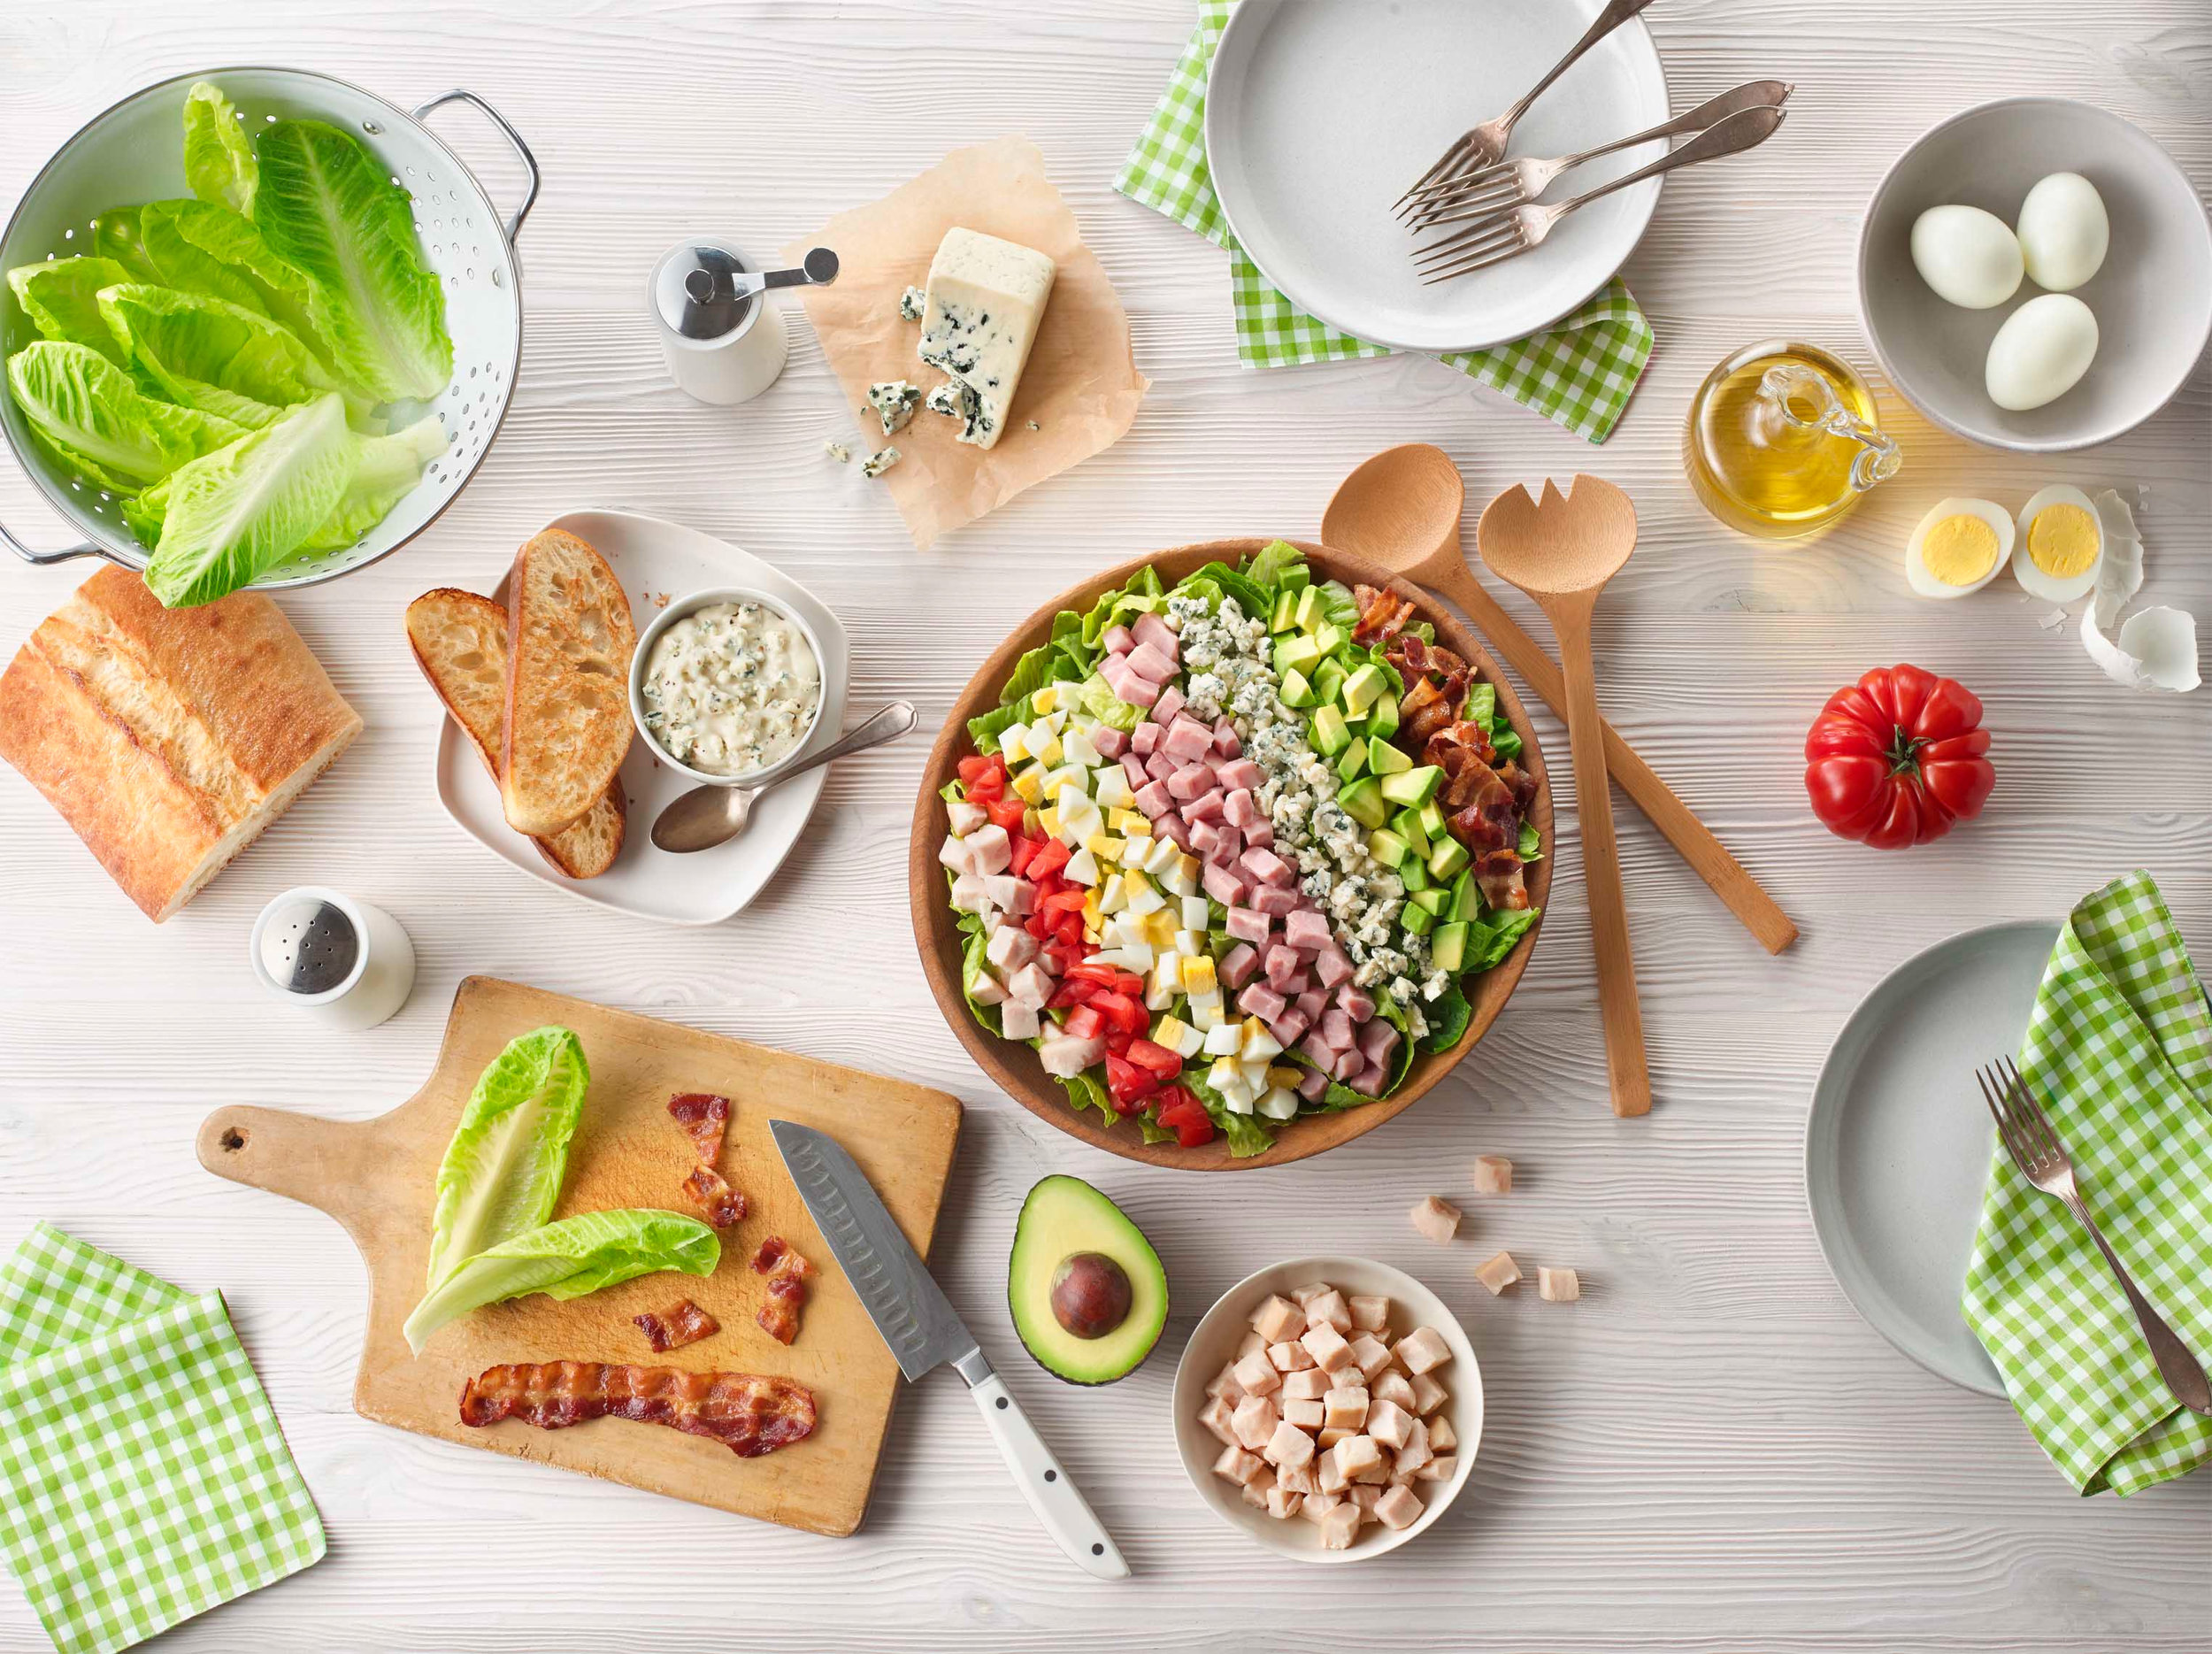 Cobb Salad Spread.jpg